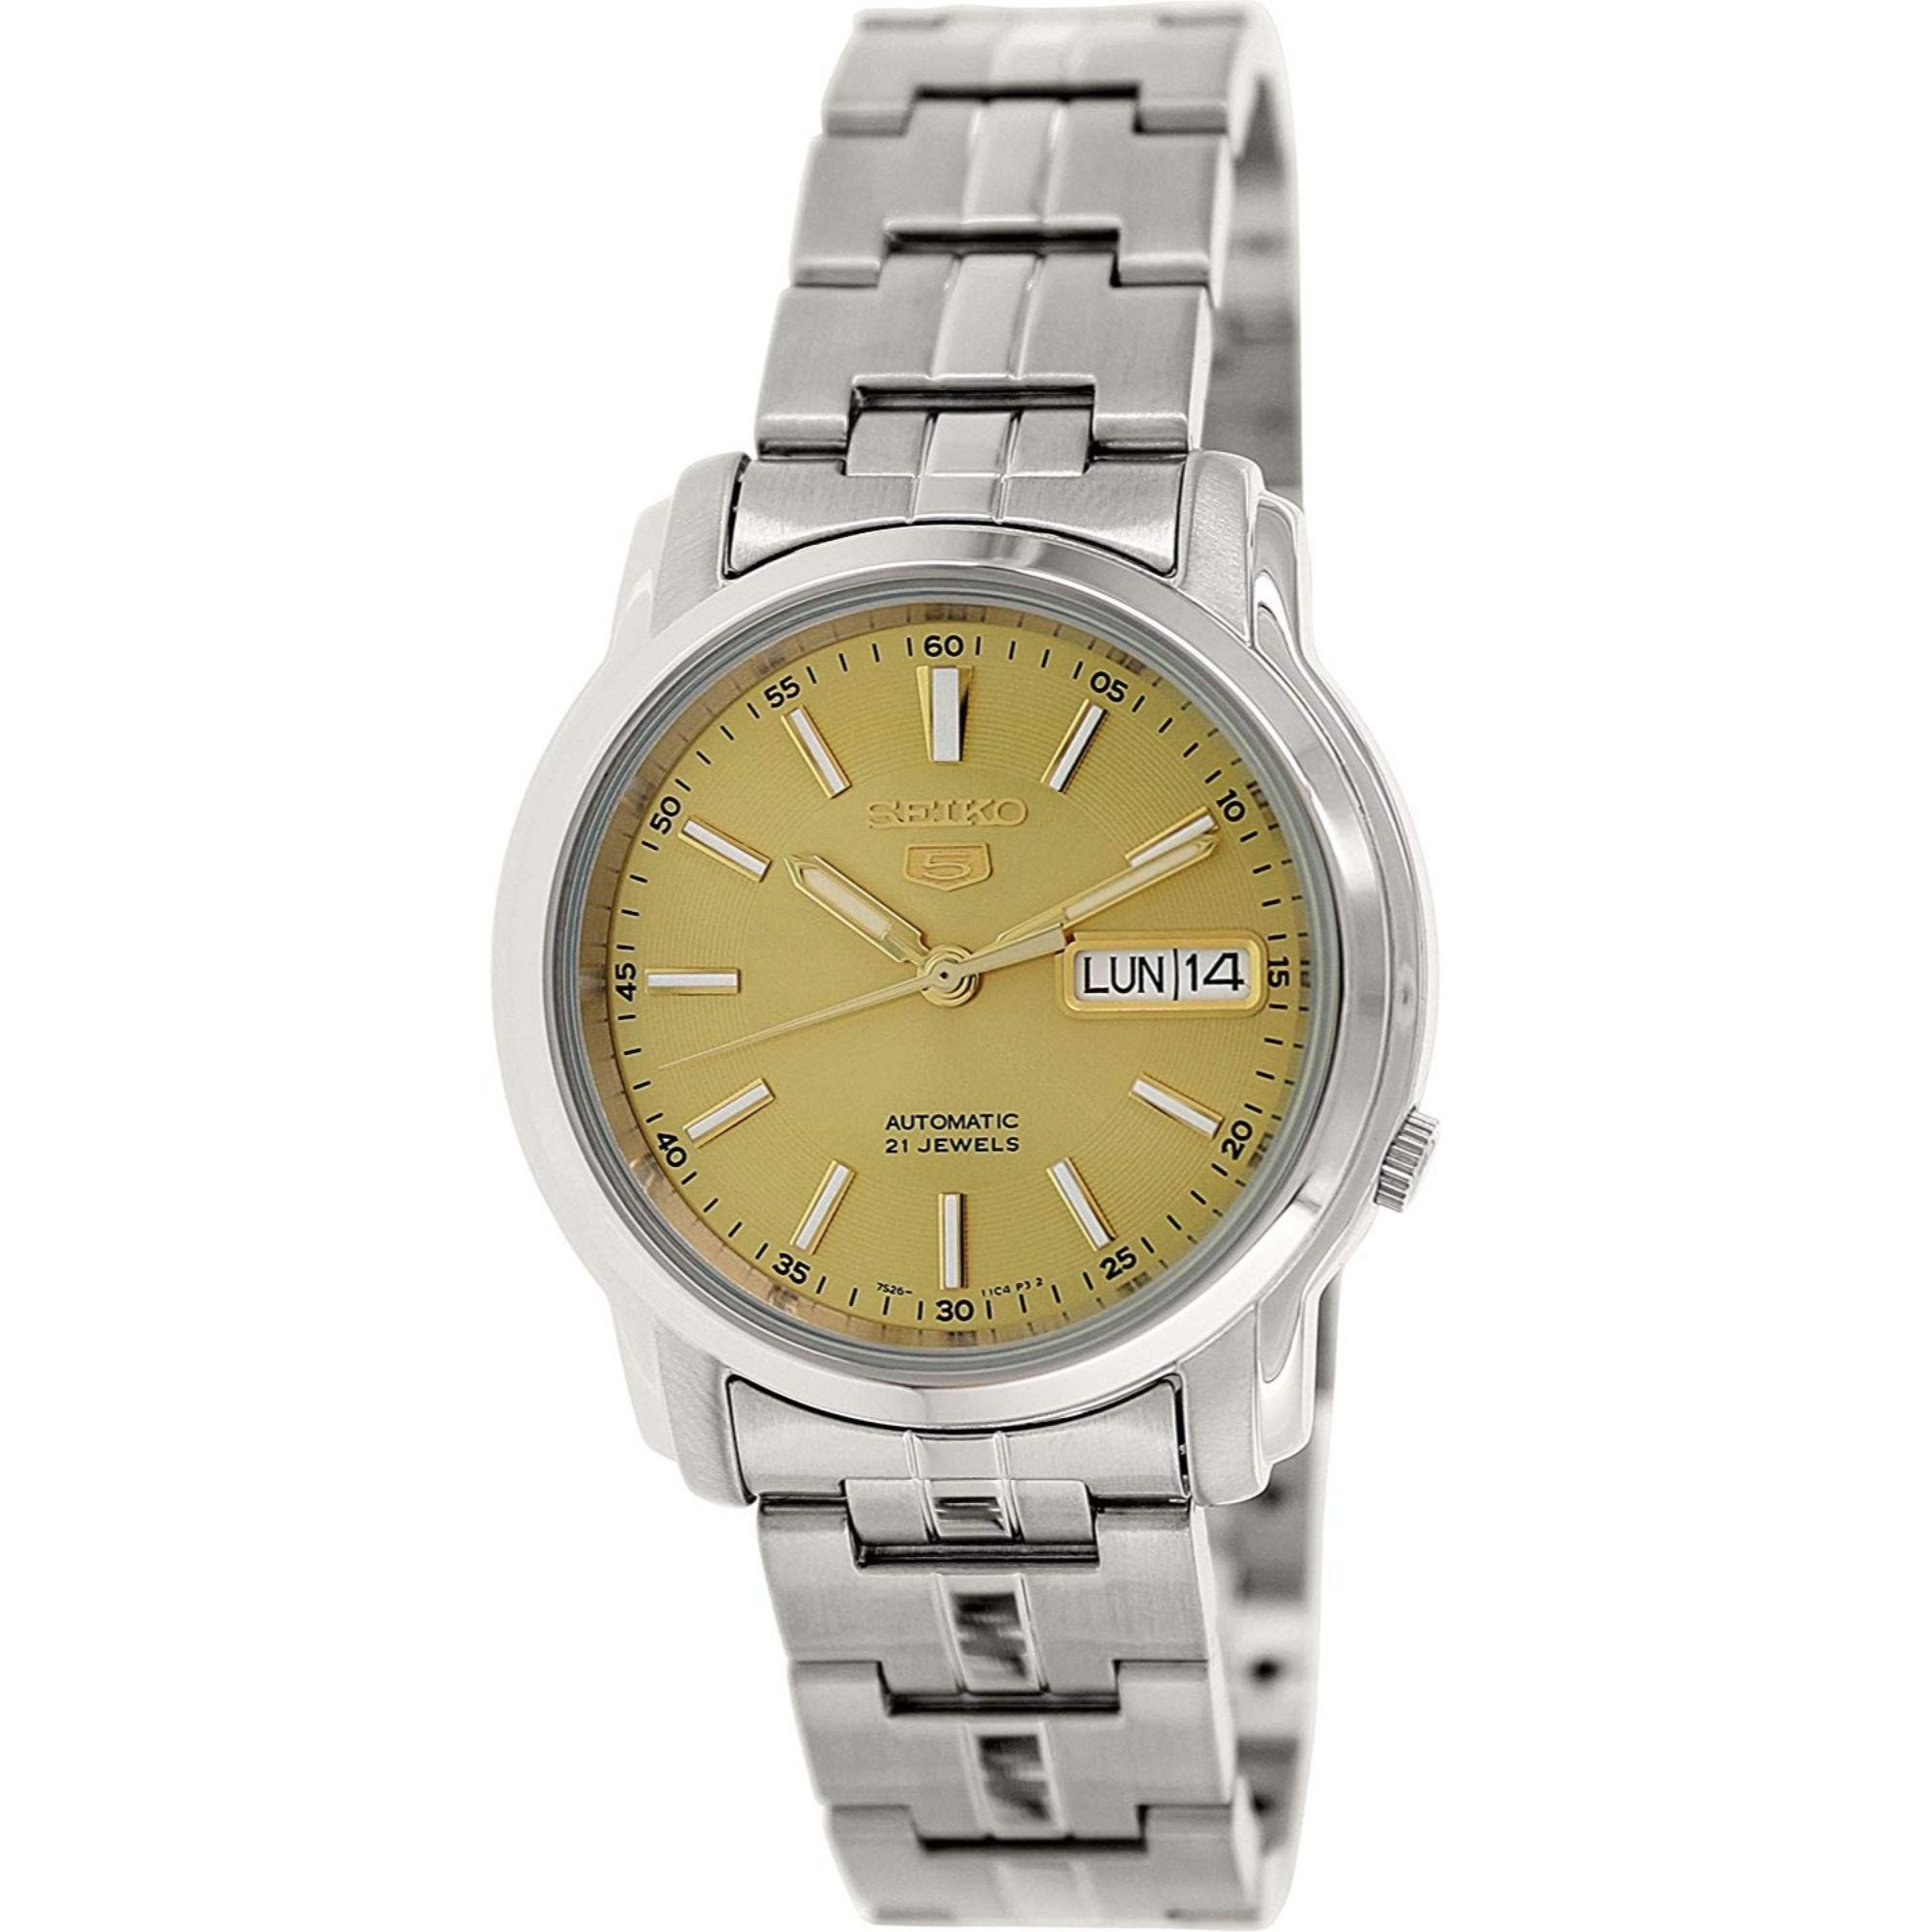 Seiko 5 Automatic Gold Dial Silver Stainless Steel Men's Watch SNKL81K1